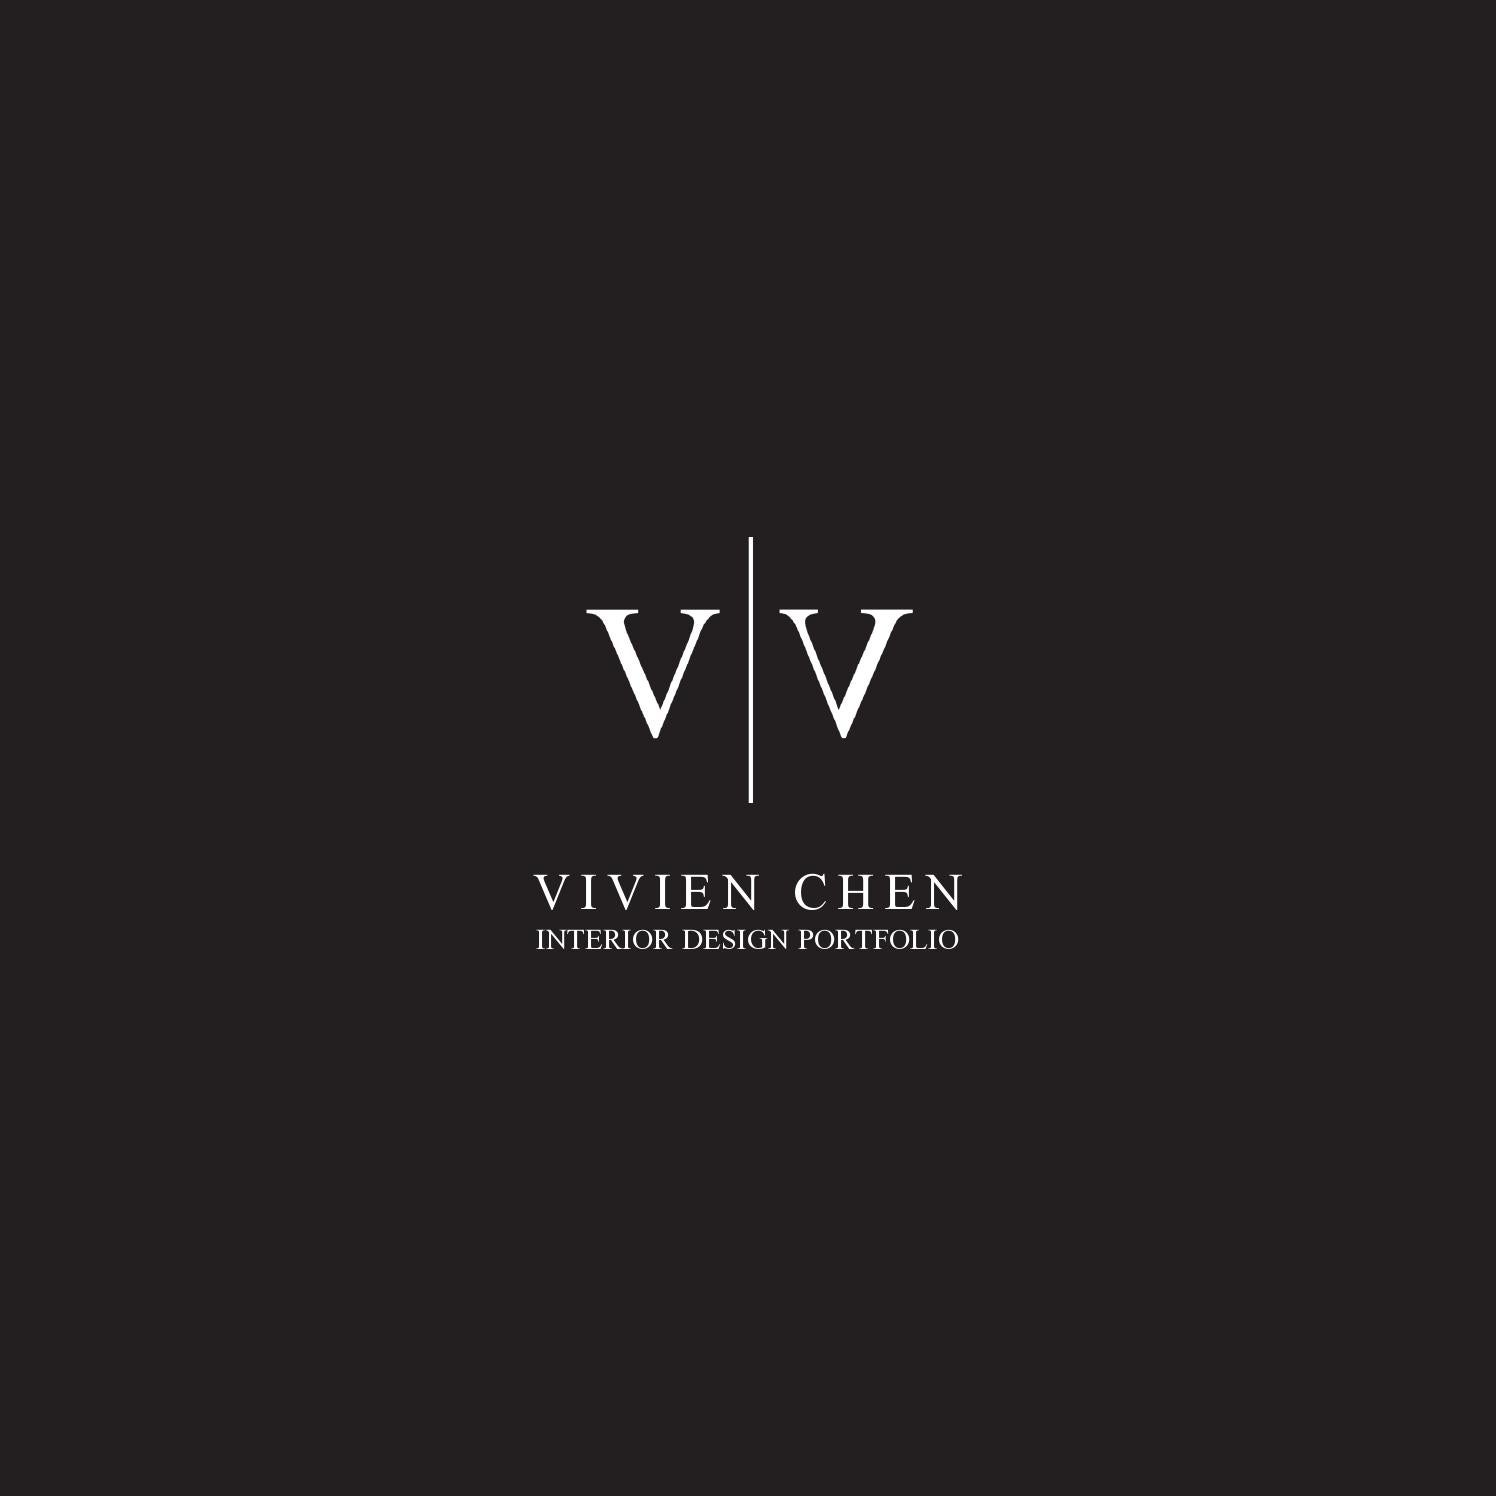 Vivien chen interior design portfolio by vivien chen issuu - Business name for interior design company ...